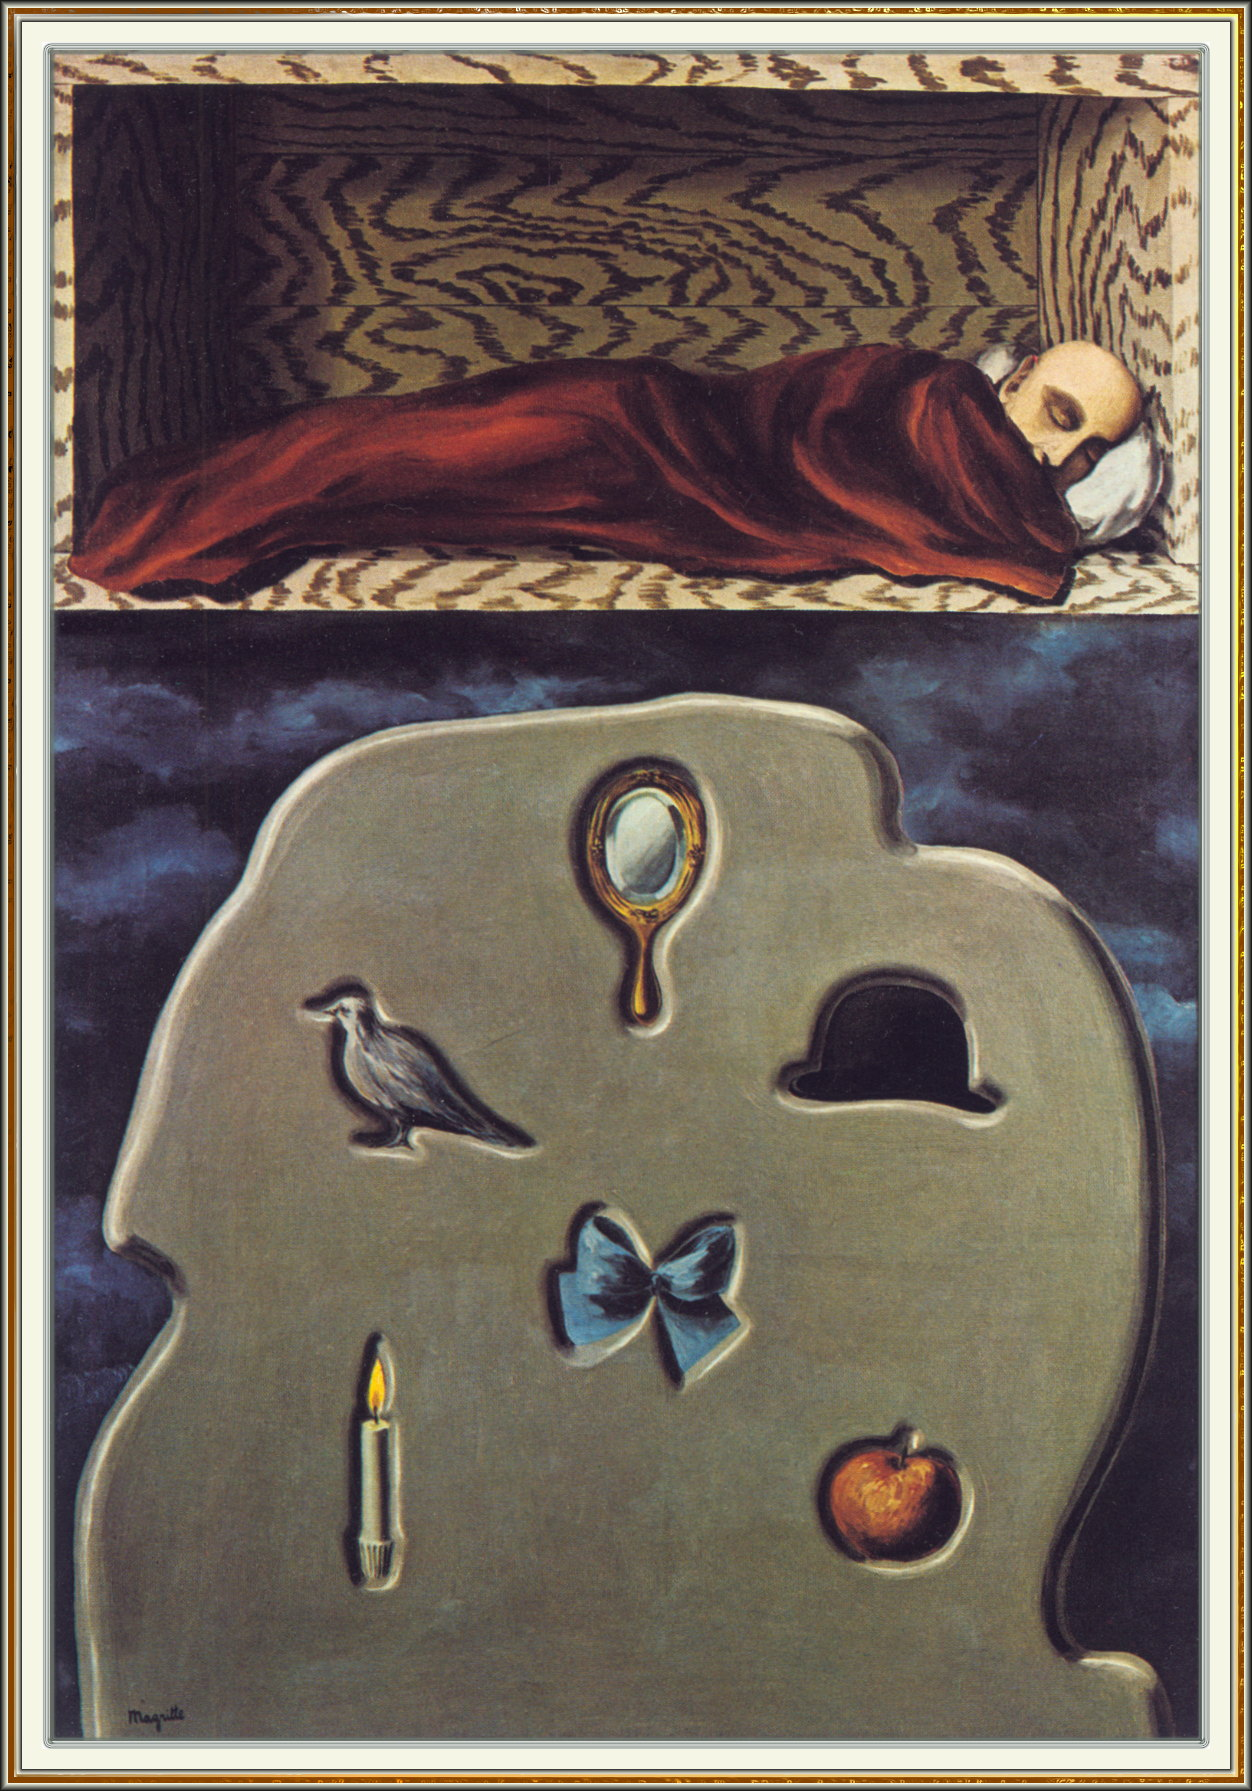 1927, Rene Magritte, The Reckless sleeper